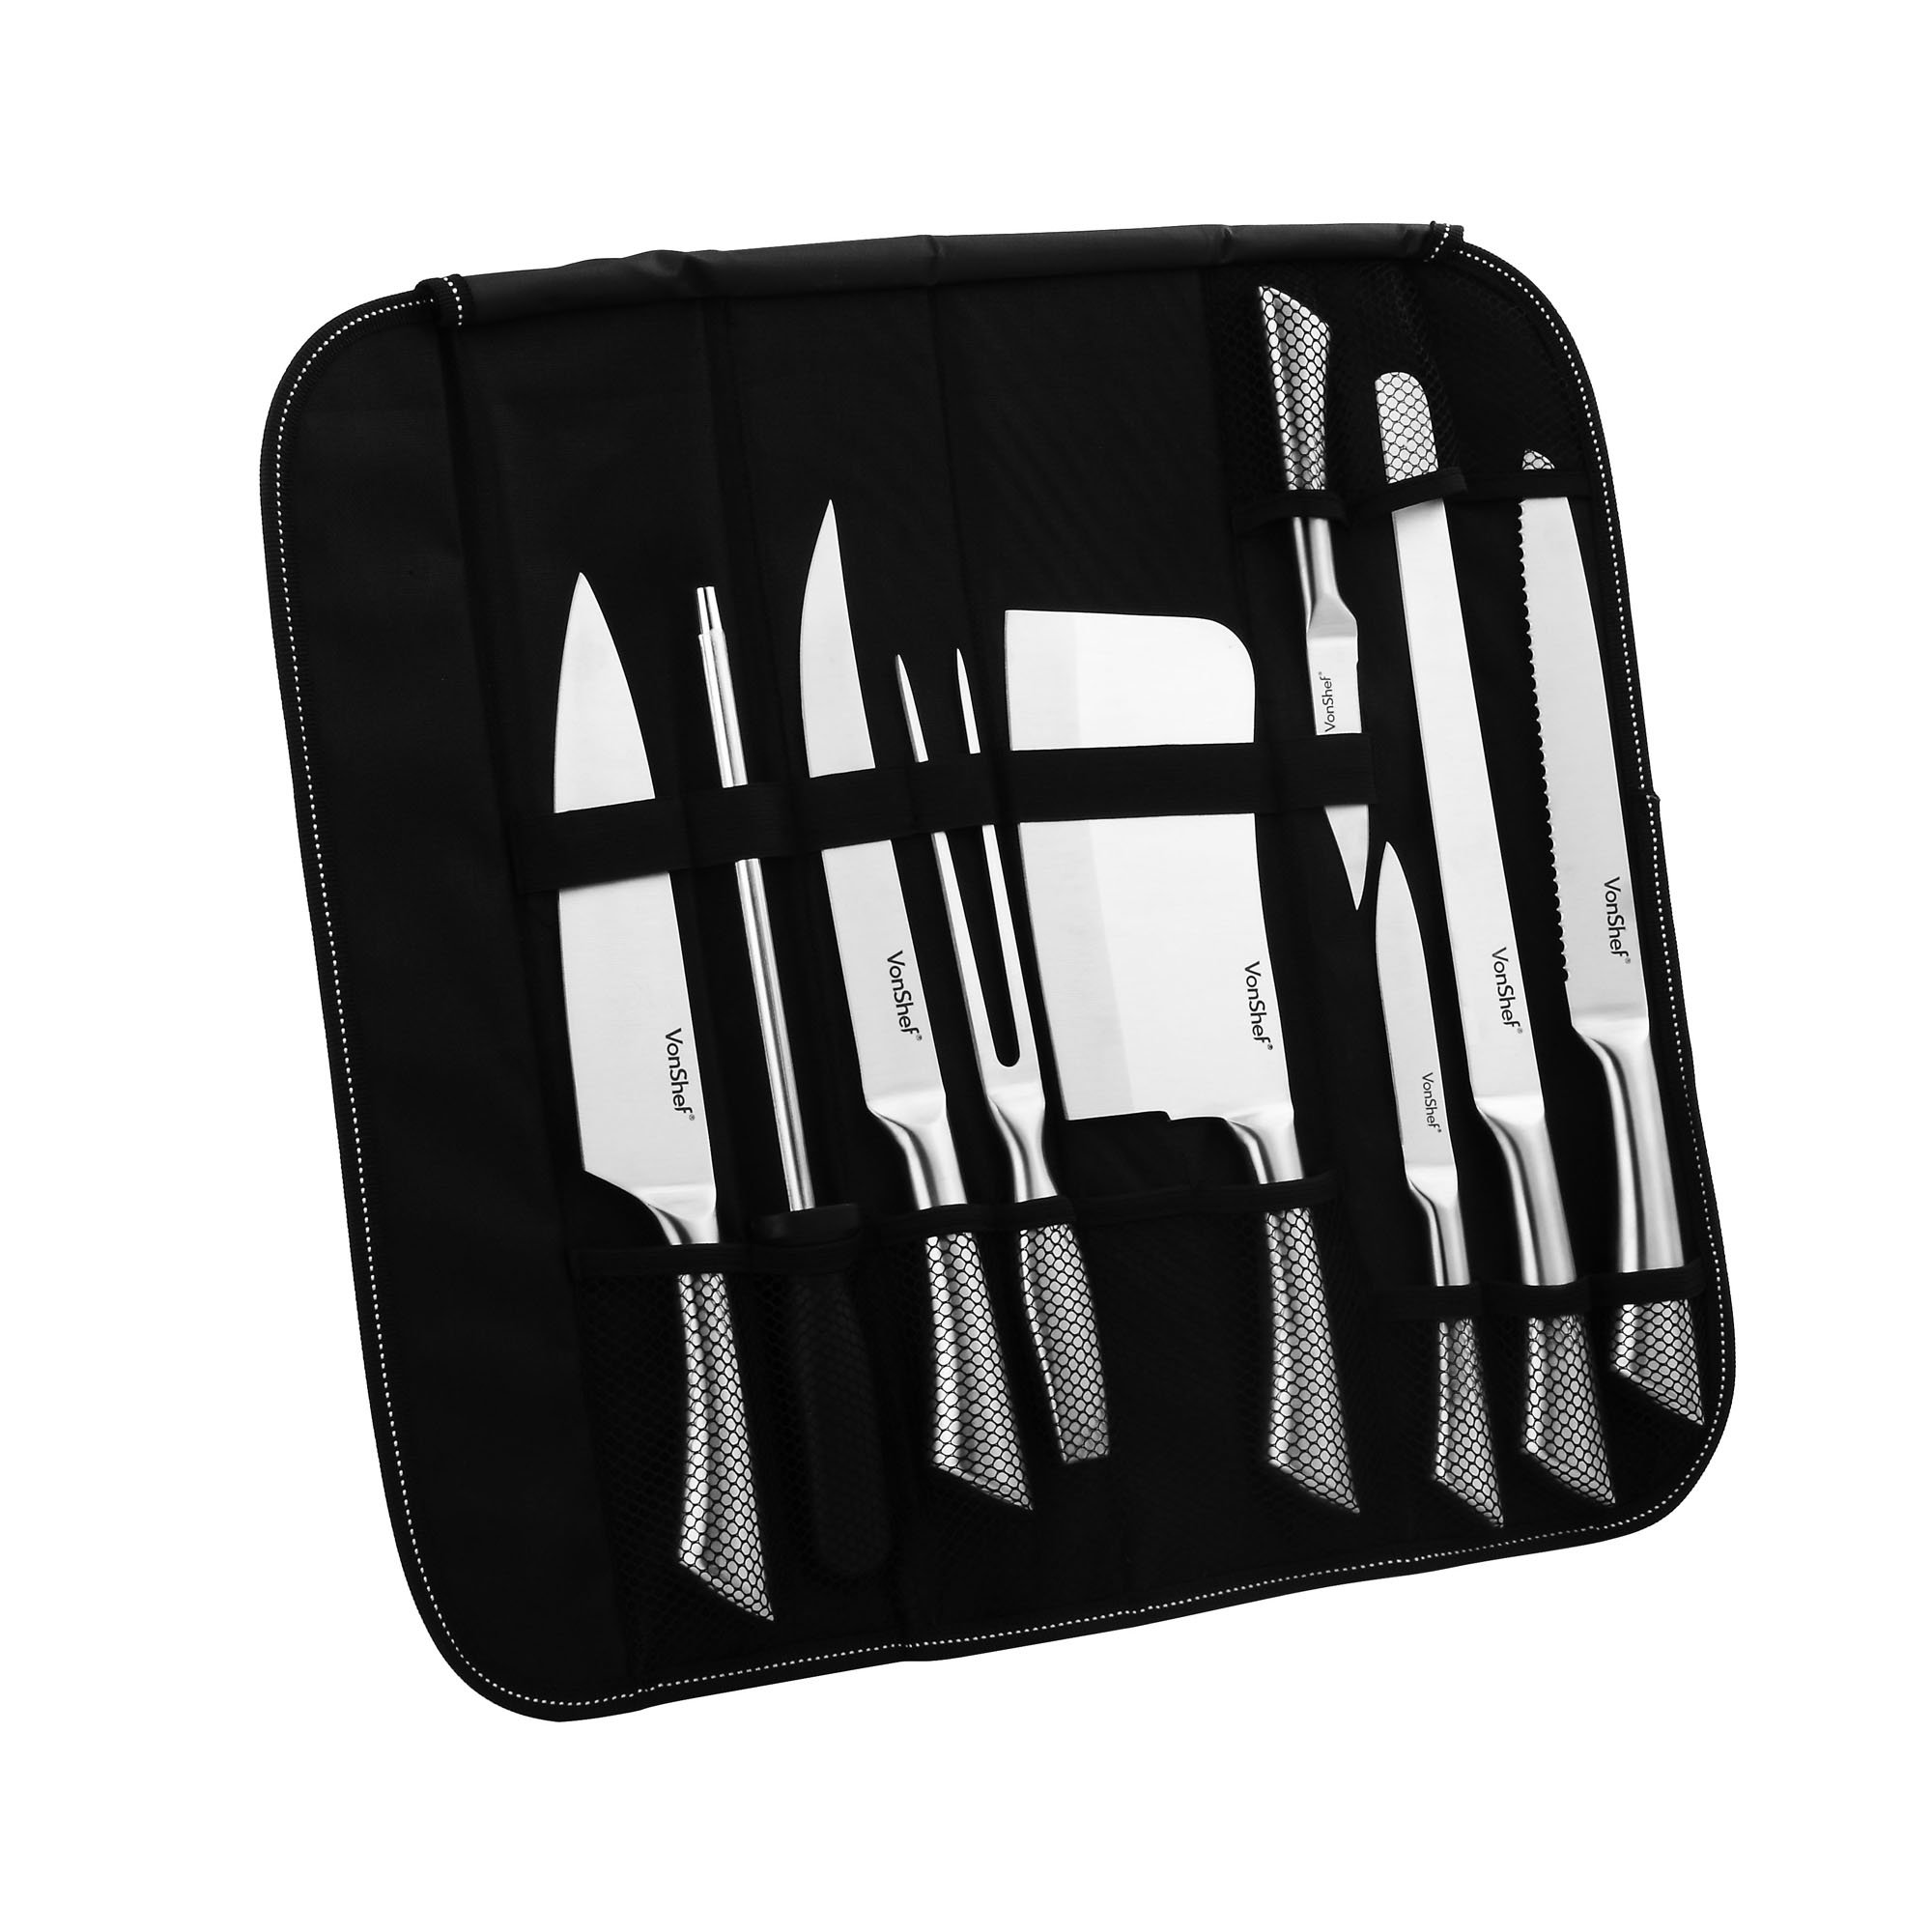 VonShef 9 Piece Assorted Kitchen Knife Carry Wrap Set With Zip Up Carry Case - Stainless Steel, Black by VonShef